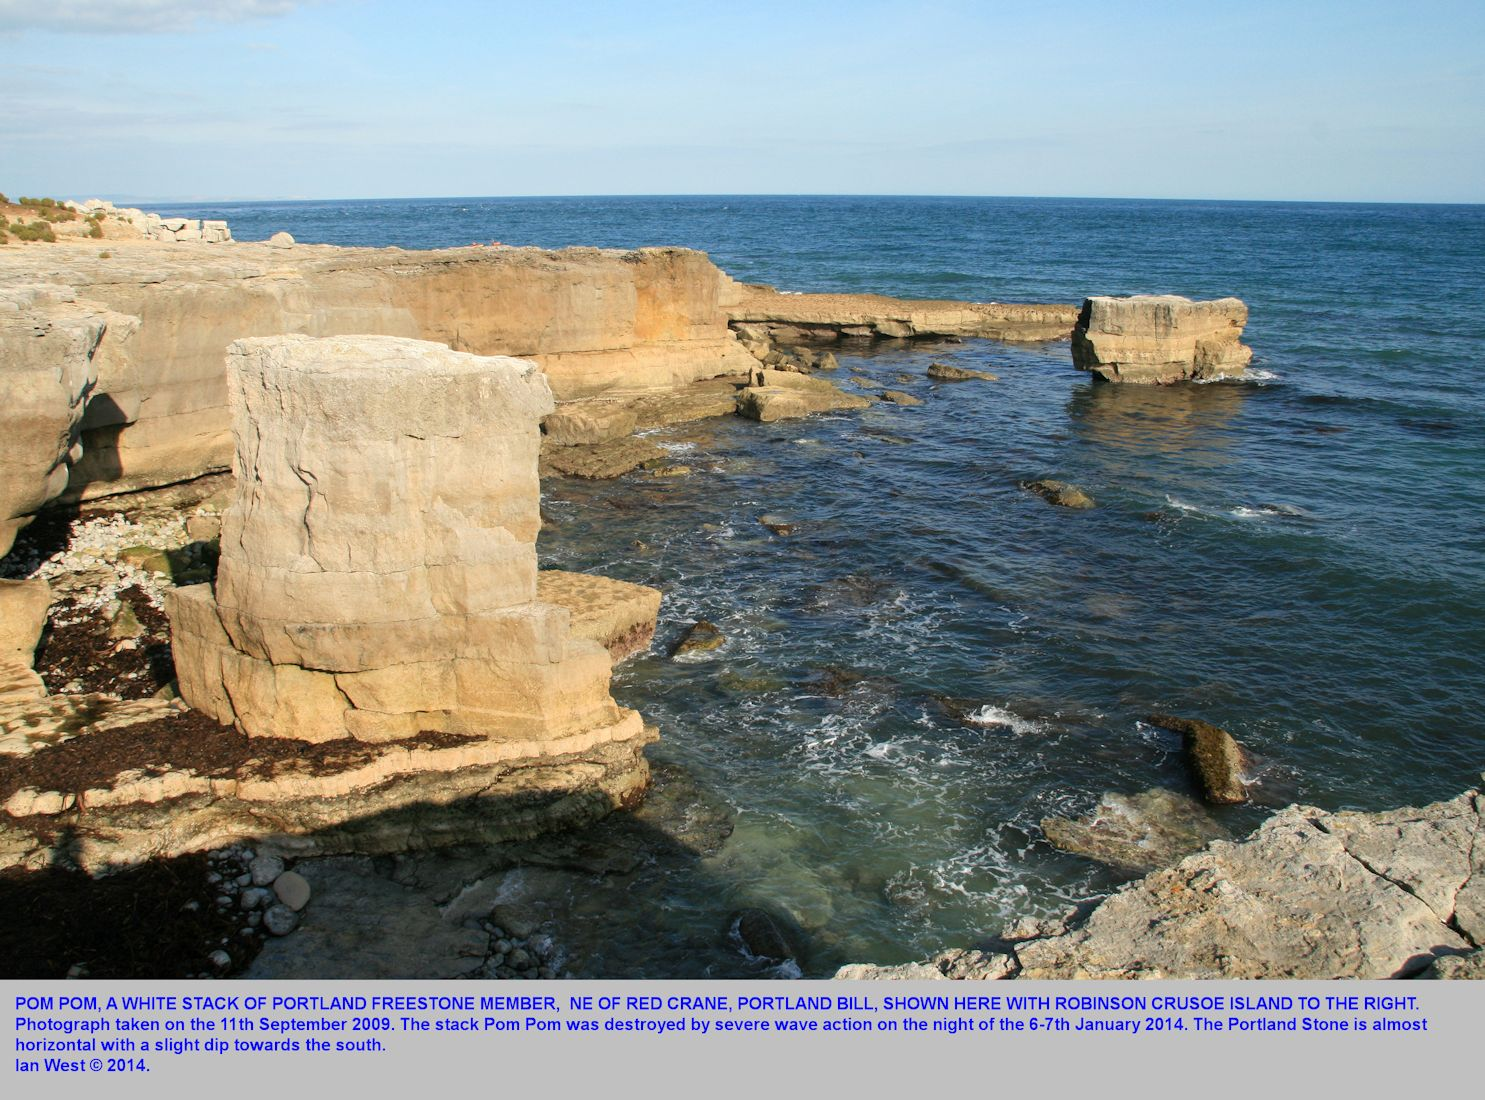 Pom Pom, a limestone stack, at Portland Bill, Dorset, in 2009, before its destruction by a storm in January 2014